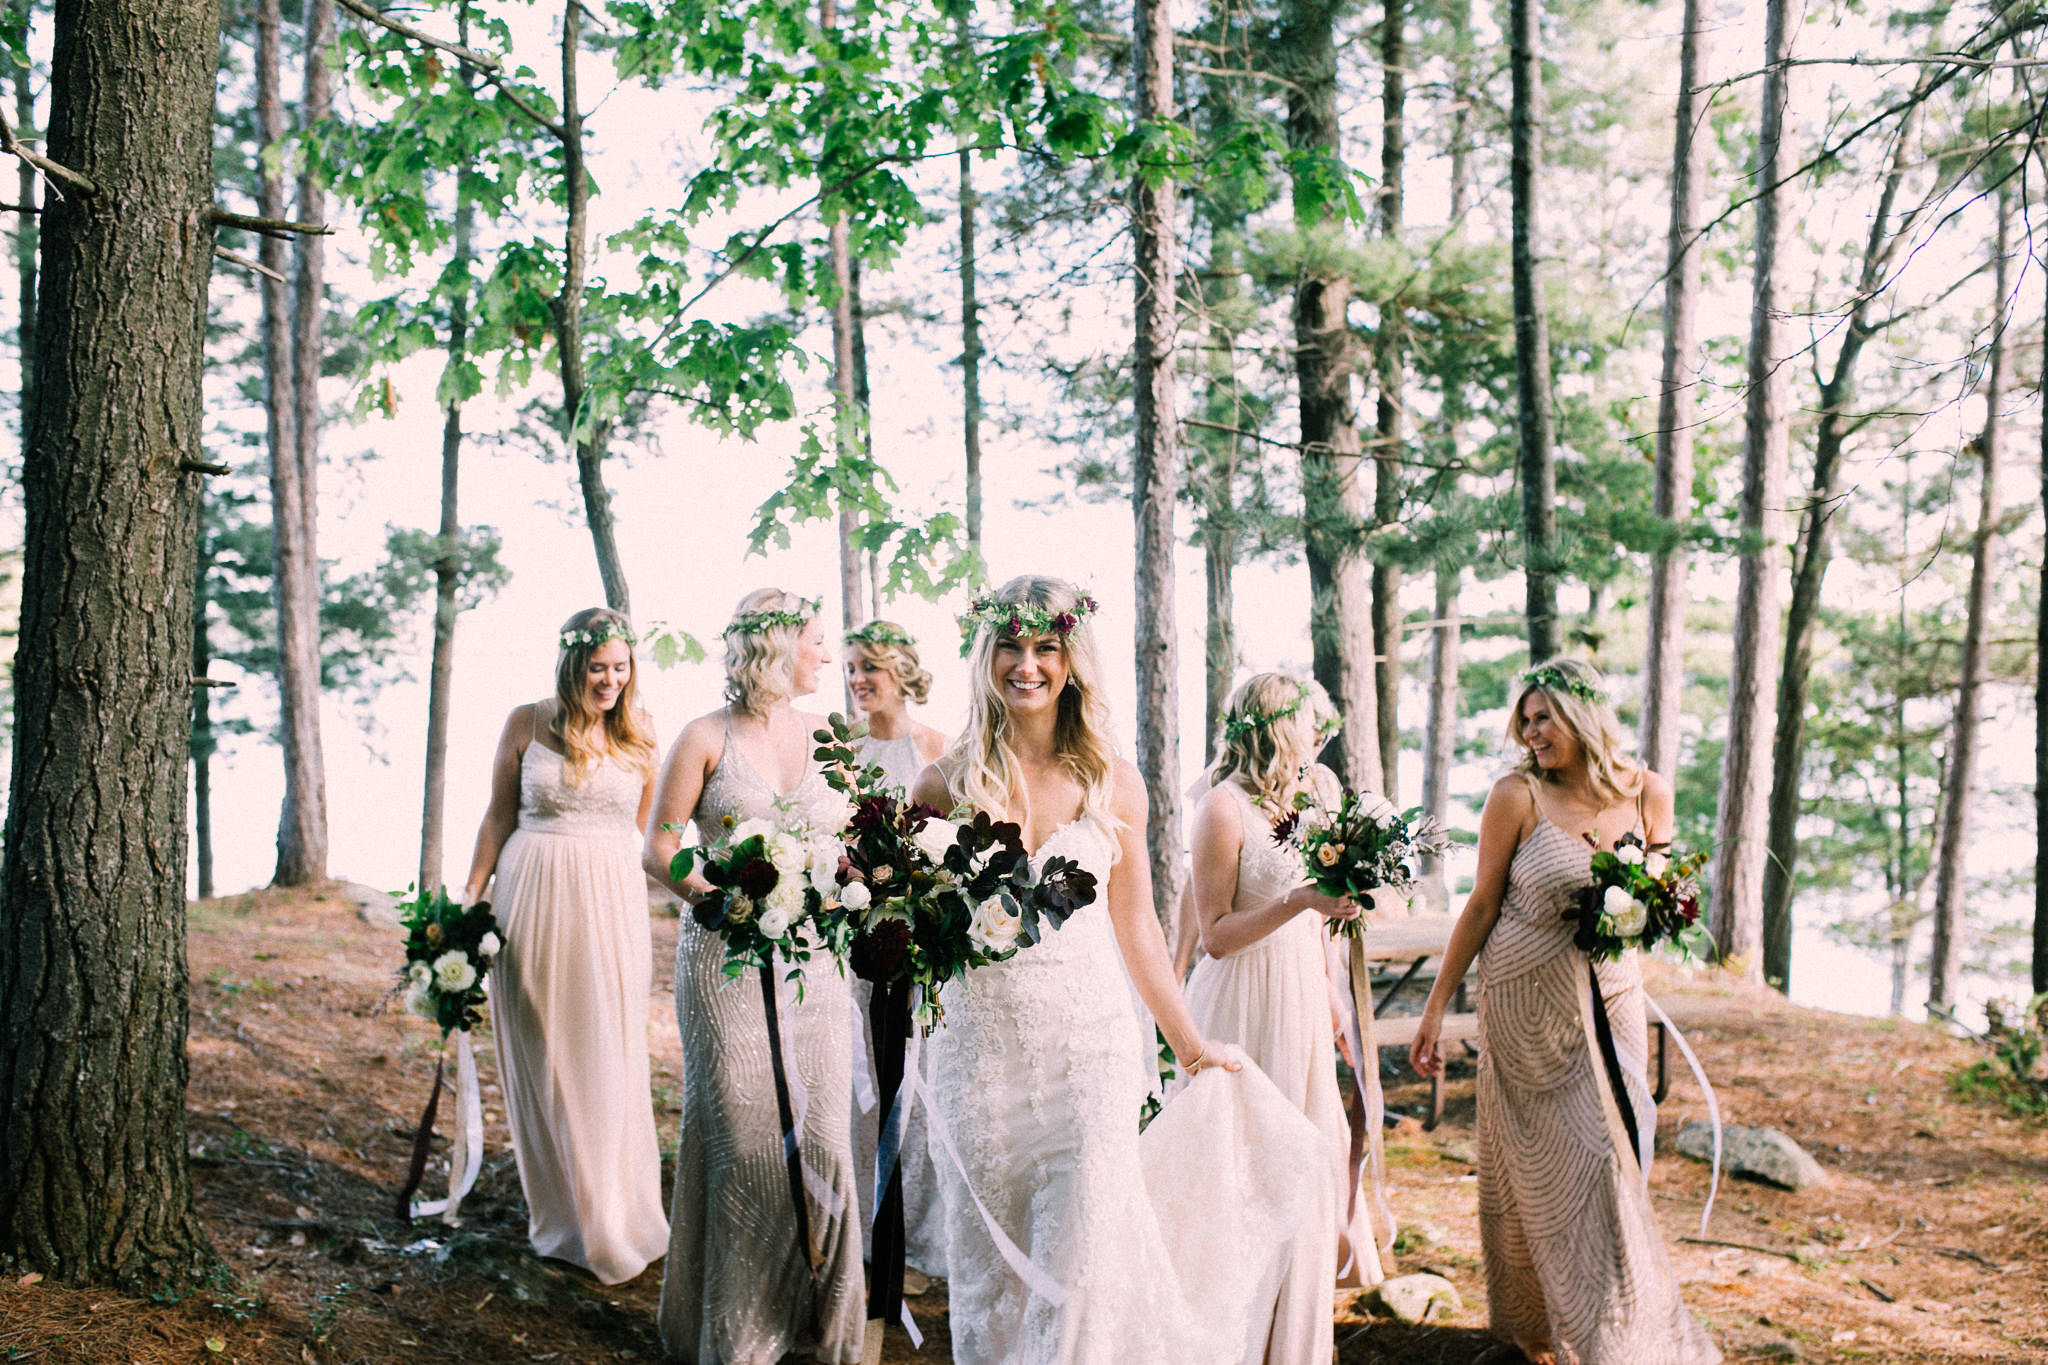 Muskoka lakeside wedding at Port Cunnington Lodge by Max Wong Photo (35)